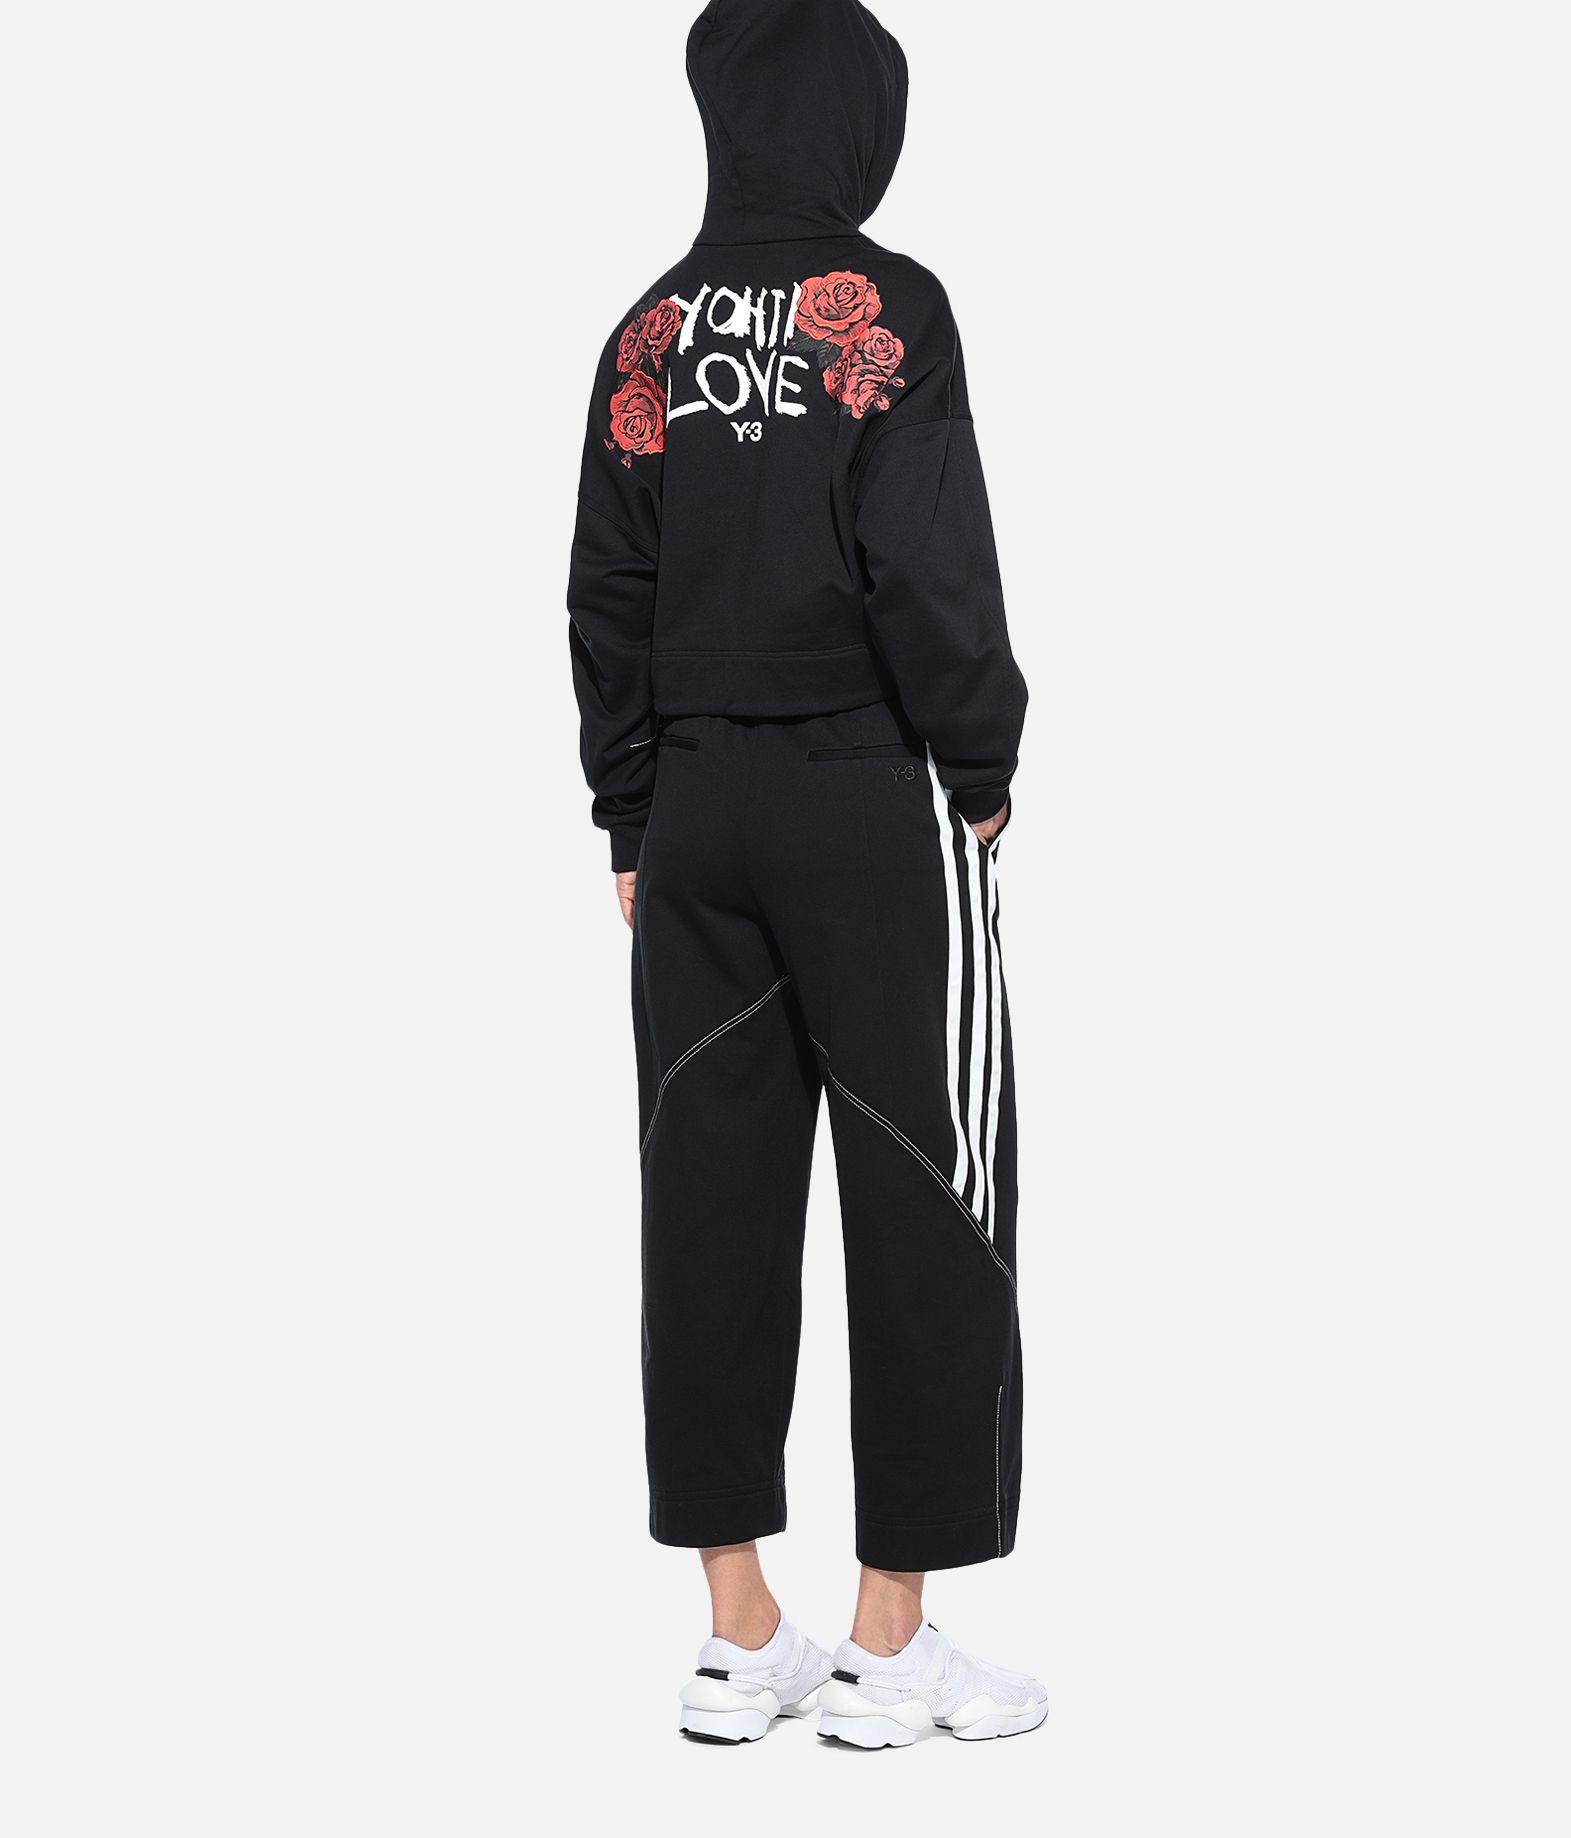 Y-3 Y-3 Yohji Love Hoodie Hooded sweatshirt Woman a